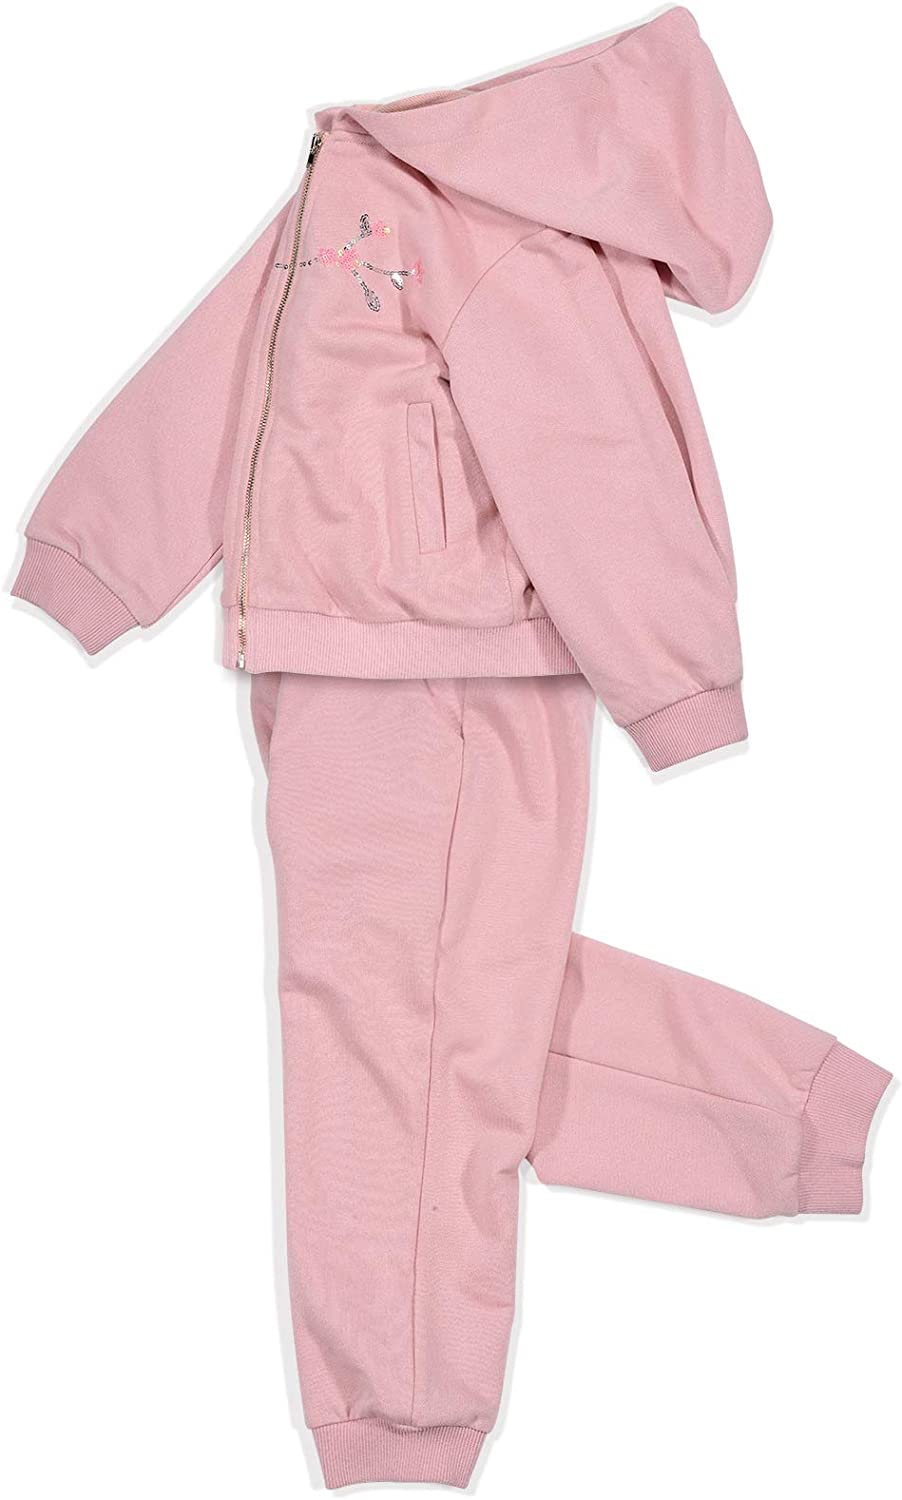 Girls Pants Sets, Crop Top Hoodie, Athletic Sweatsuit, Pink Sequins Embroidery: Clothing